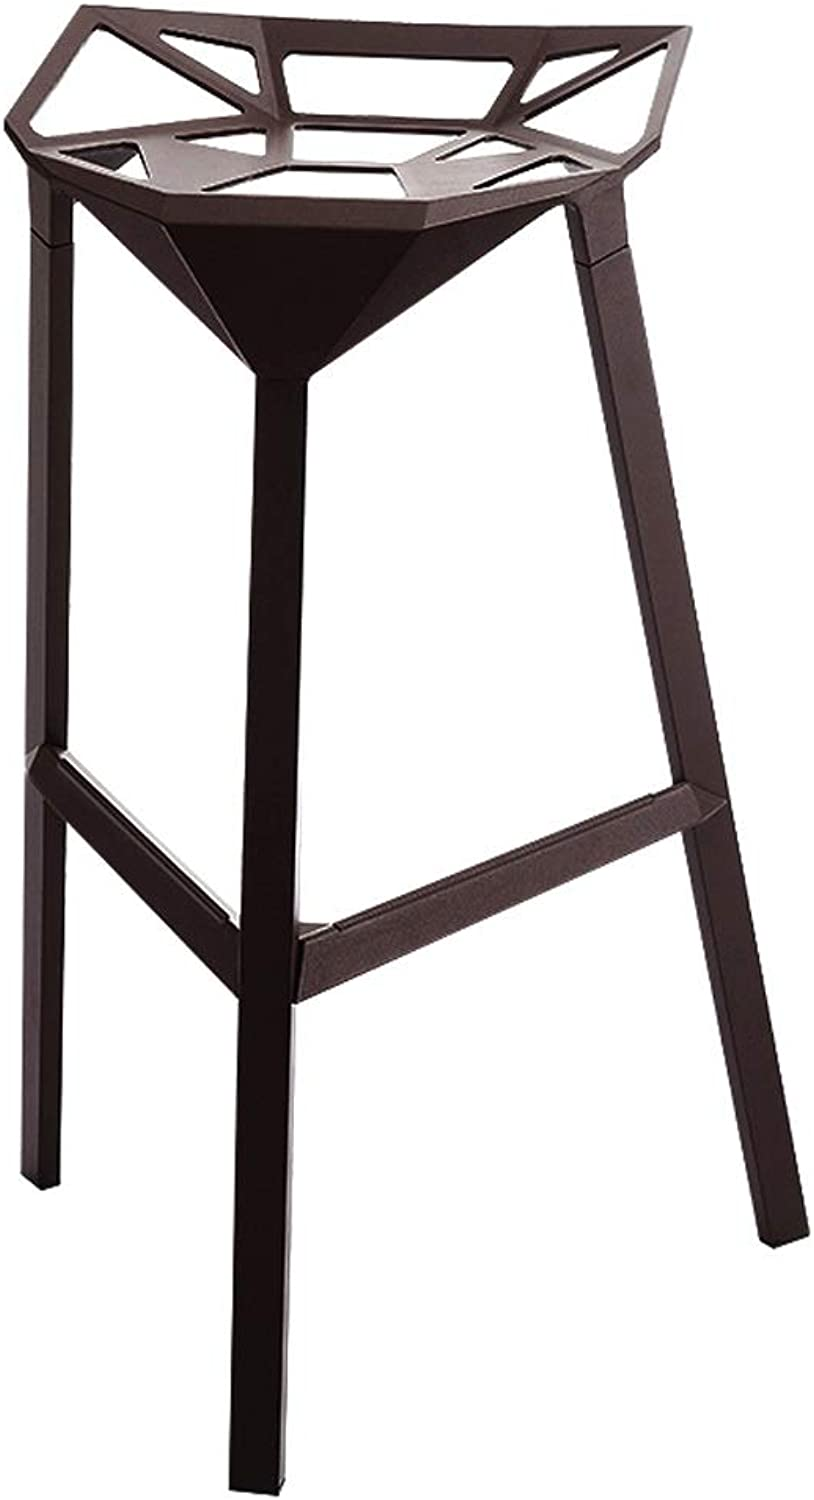 Geometric Industrial Wind Stool Aluminum Alloy High Stool Home Front Bar Chair Folding Chair (color   Black)